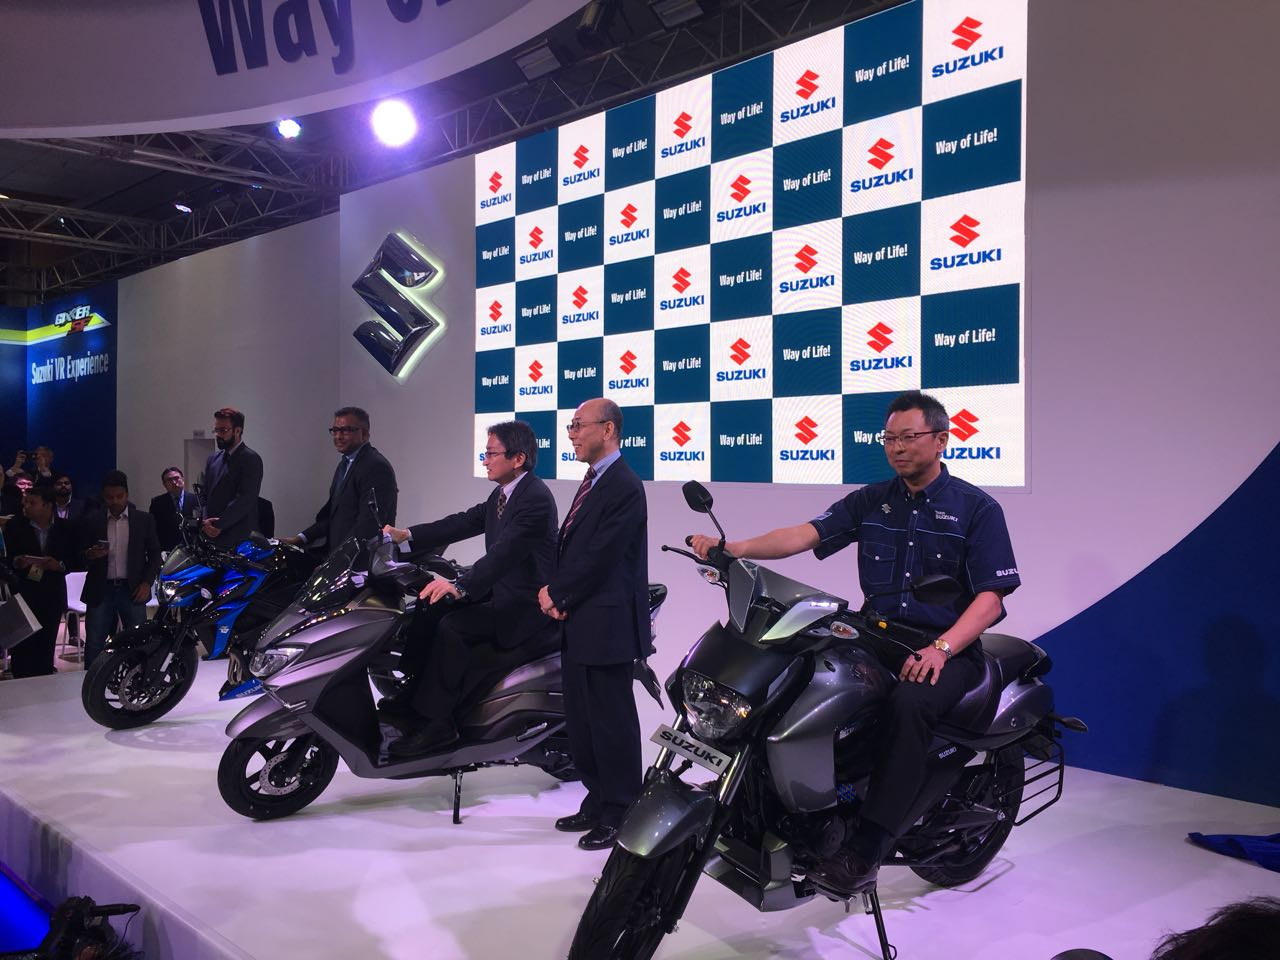 <p>From the Suzuki stall at Auto Expo 2018!</p>